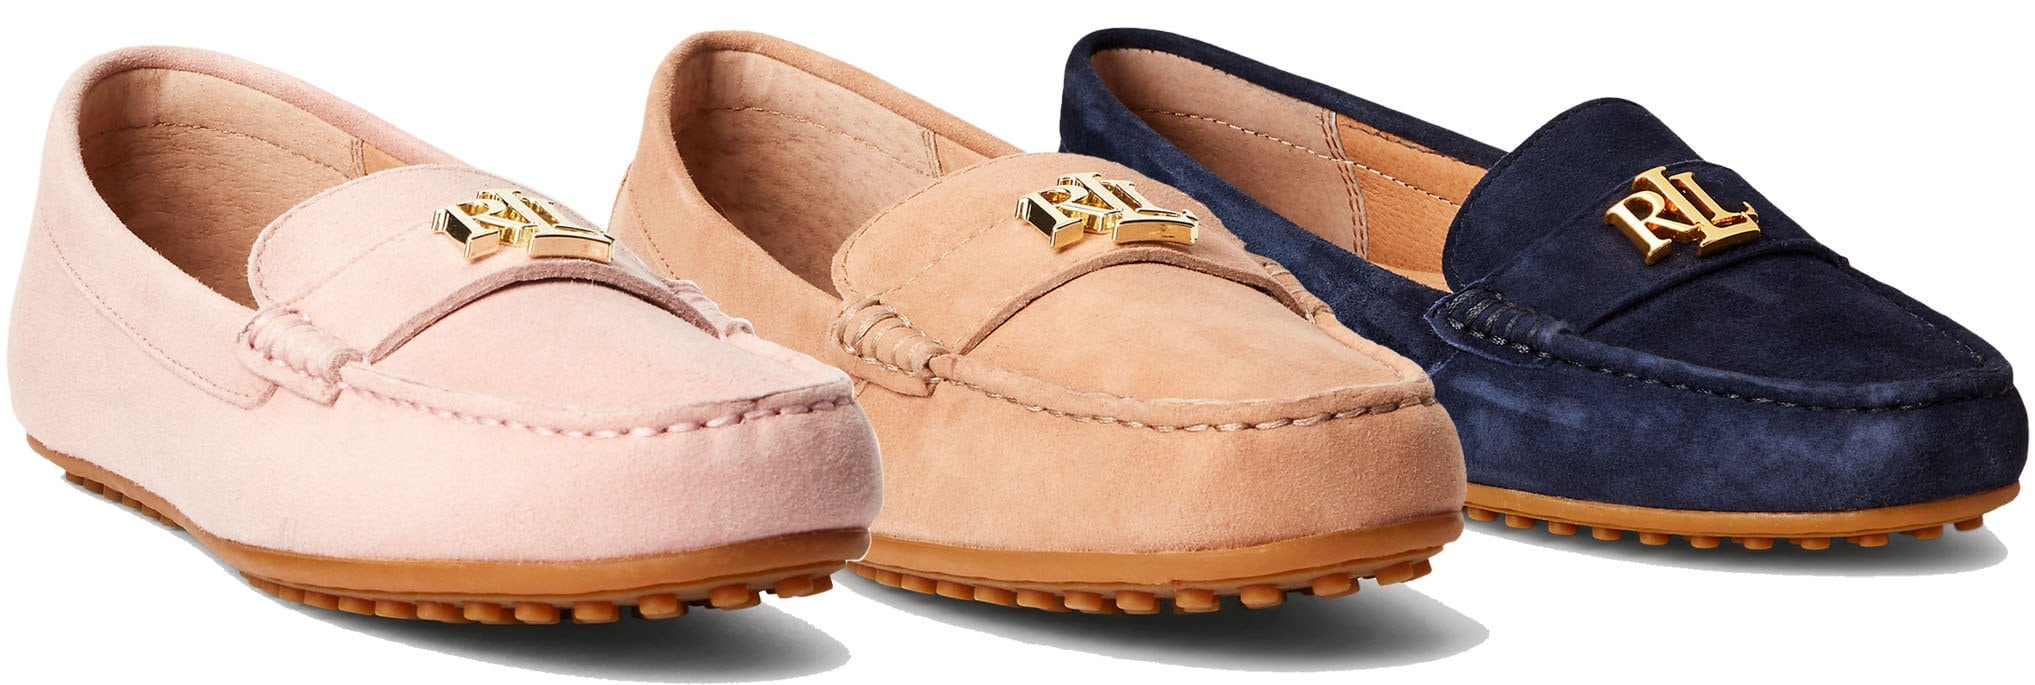 Ralph Lauren's LRL logo adds style to these modern suede loafers, which also feature rubber nub outsoles